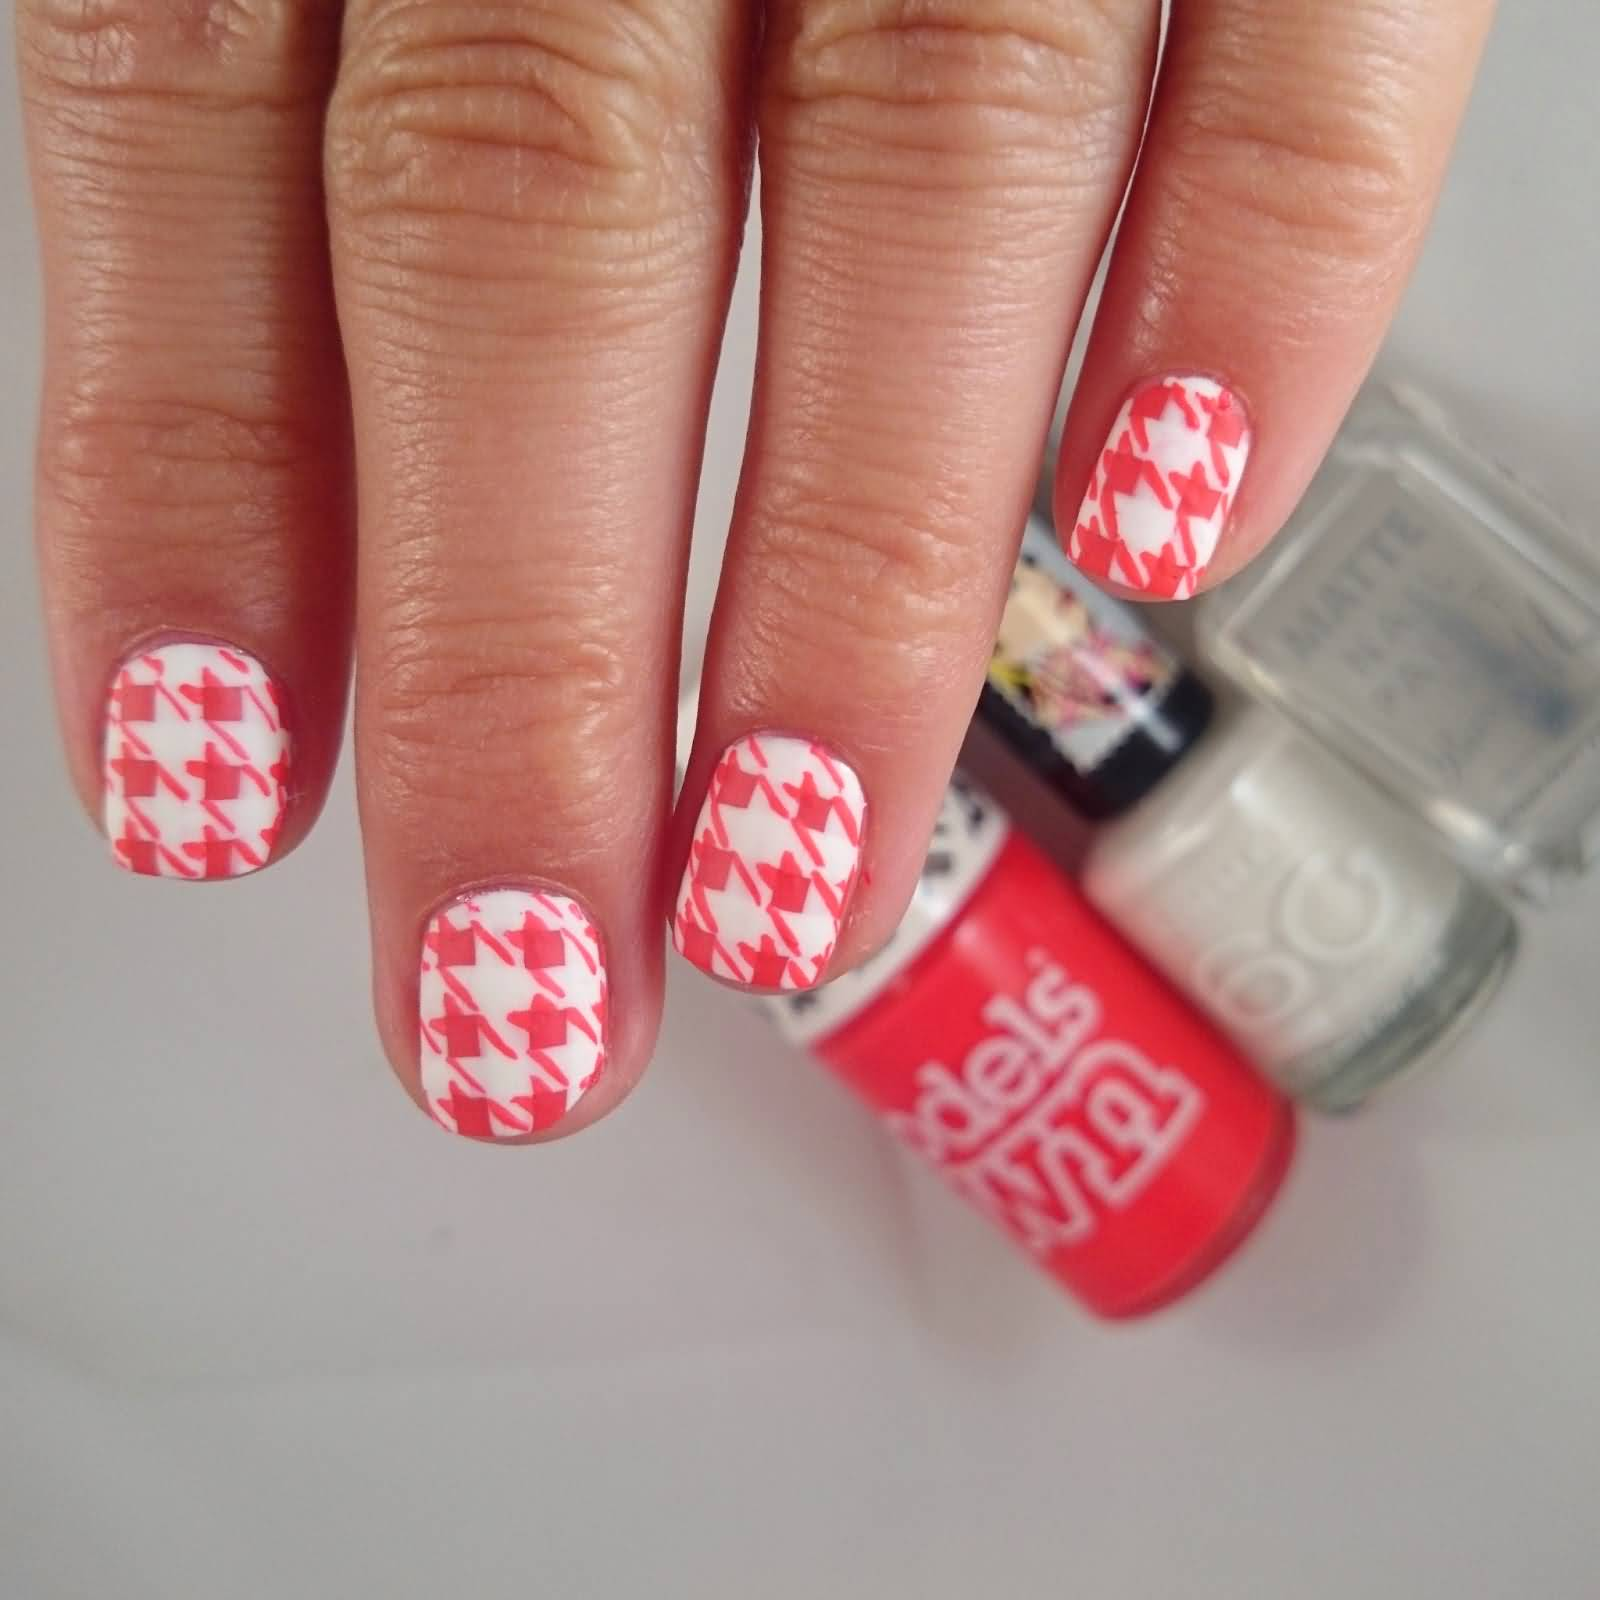 Pink And White Houndstooth Nail Art Design Idea